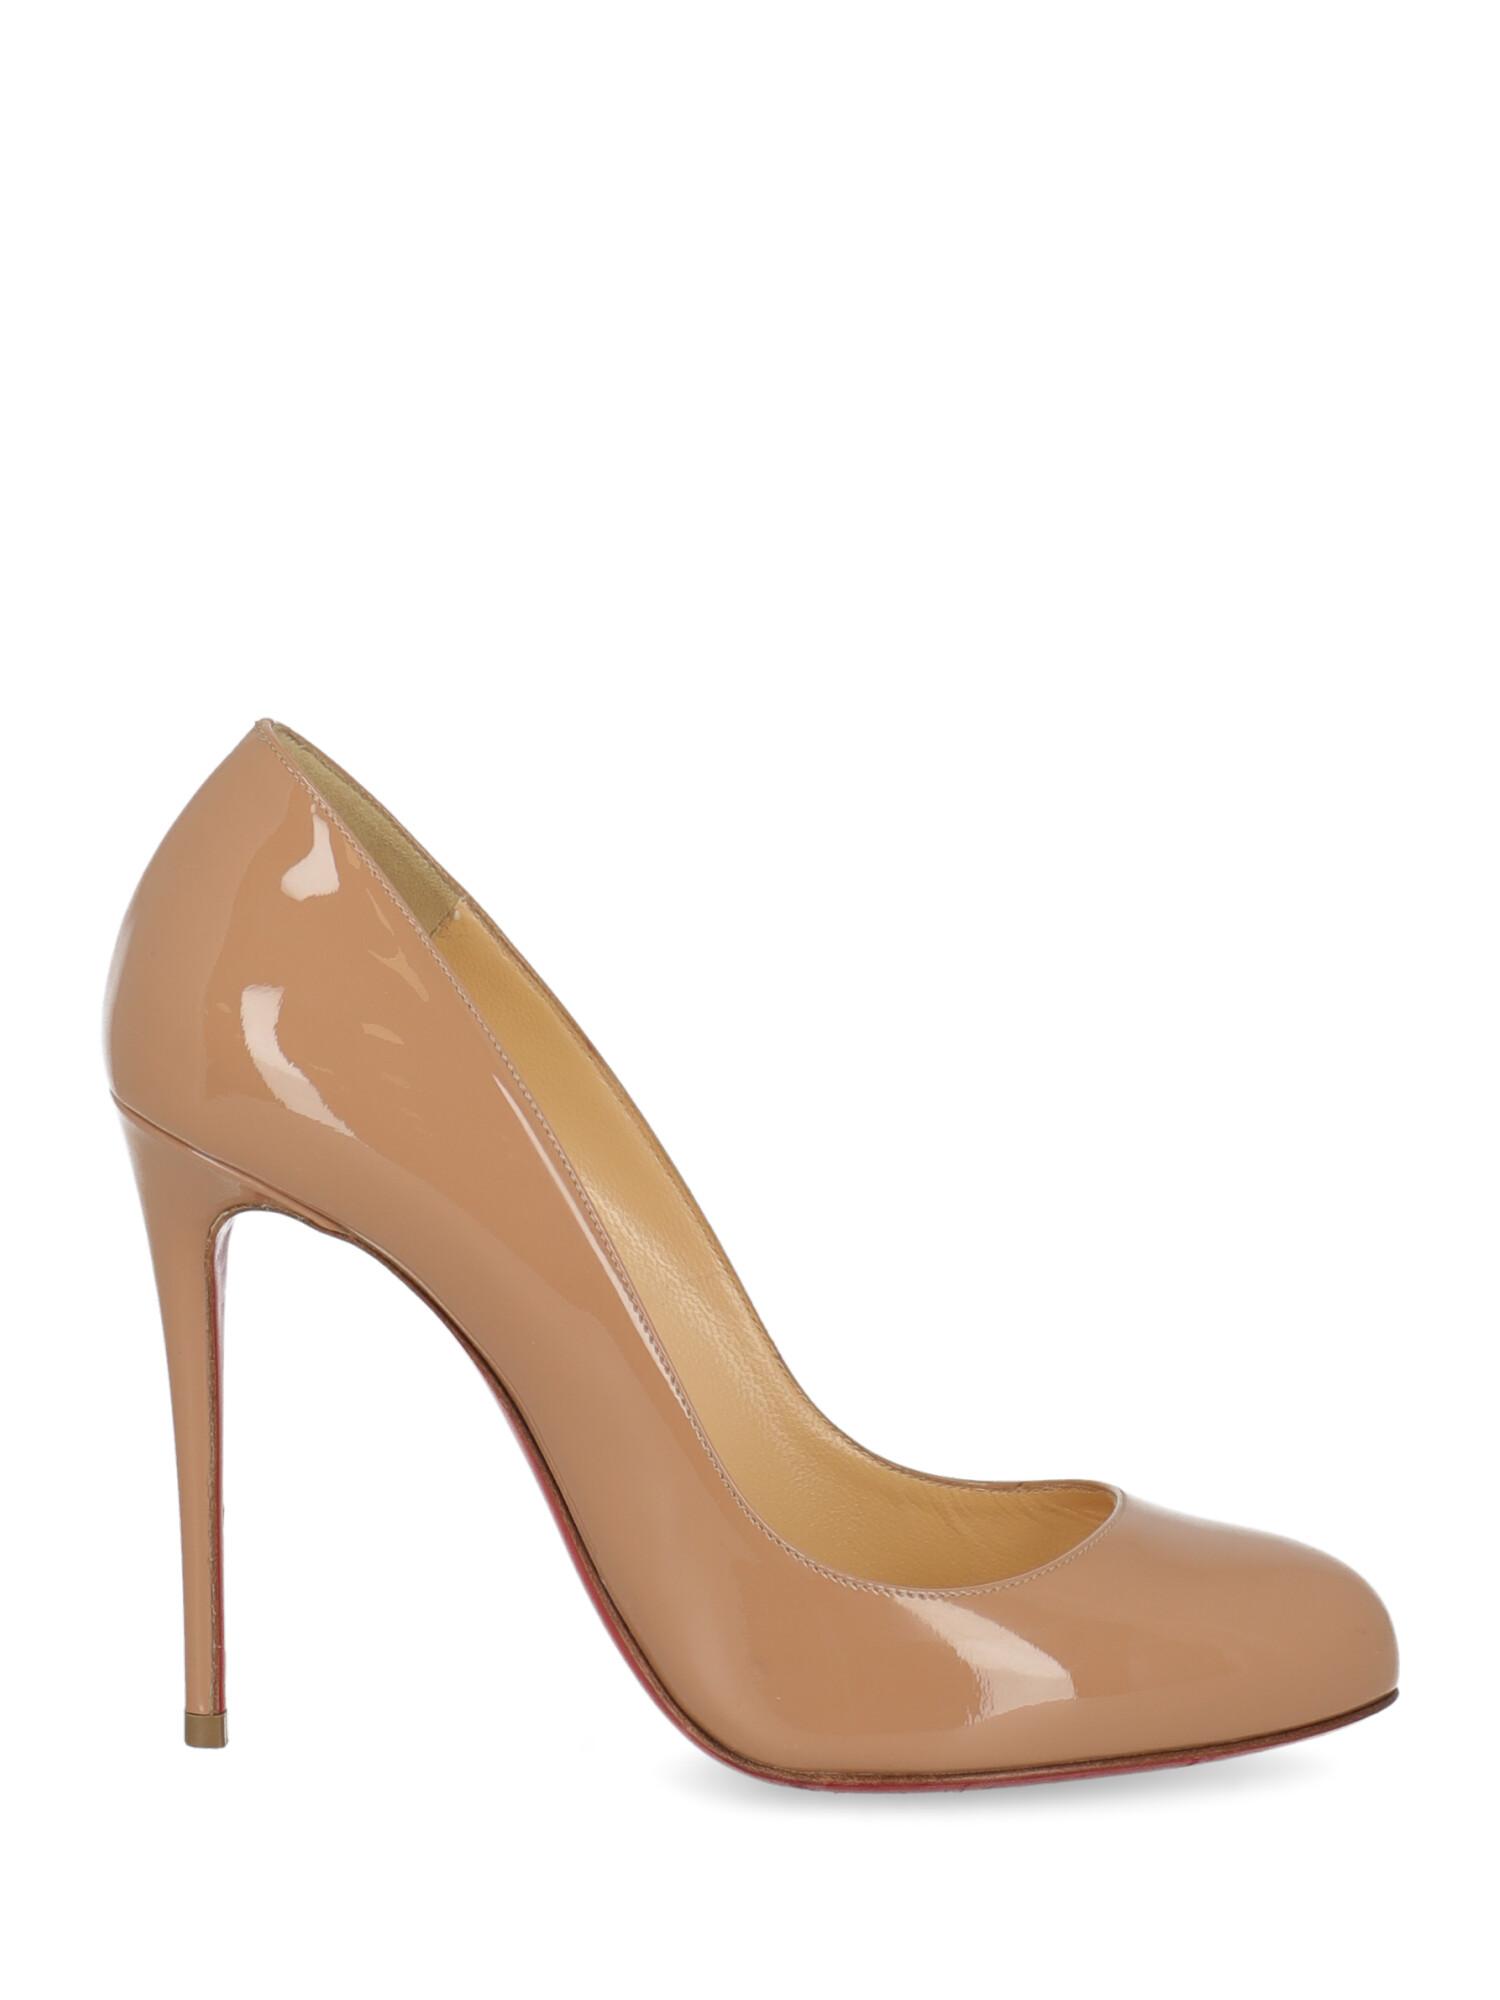 Pre-owned Christian Louboutin Shoe In Beige